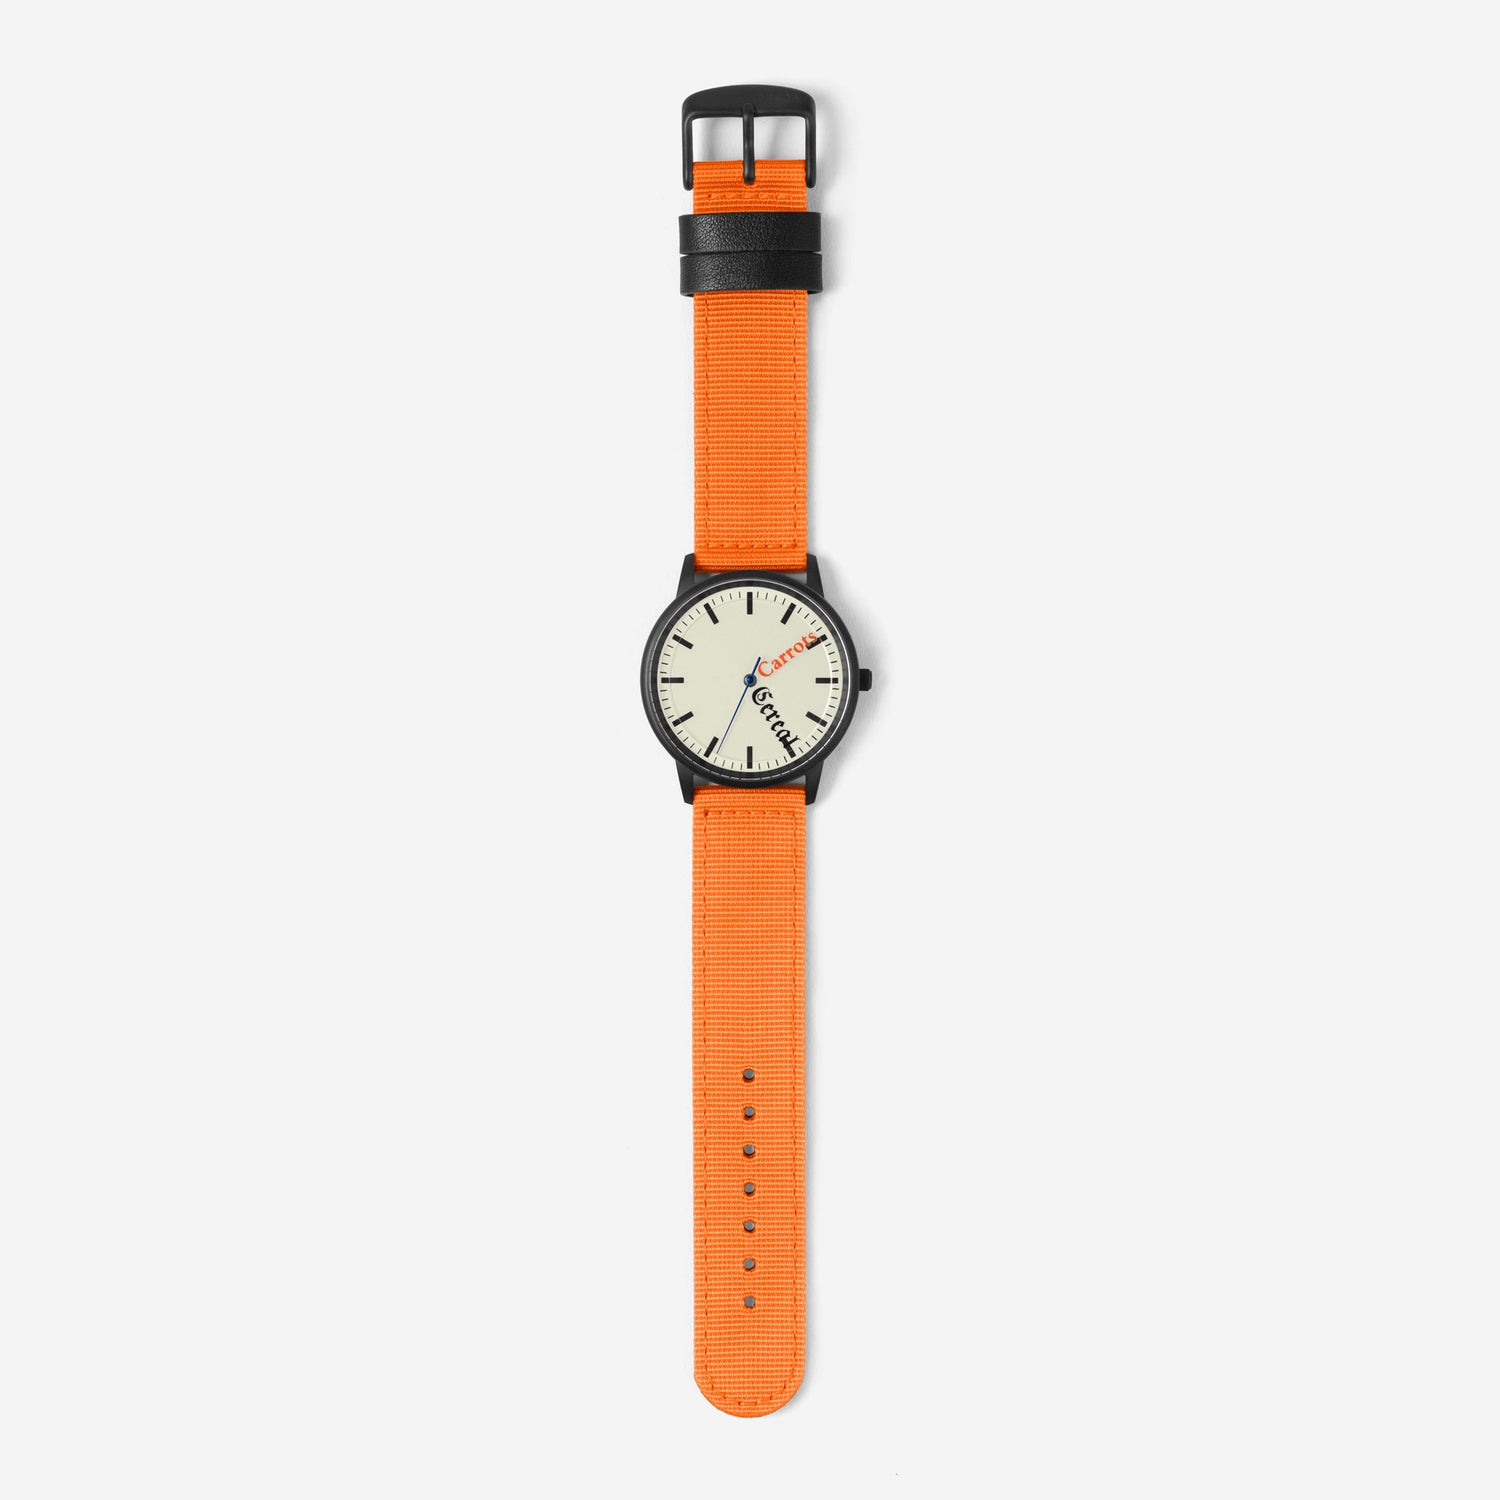 breda-cereal-carrots-valor-1707ct-black-orange-watch-long